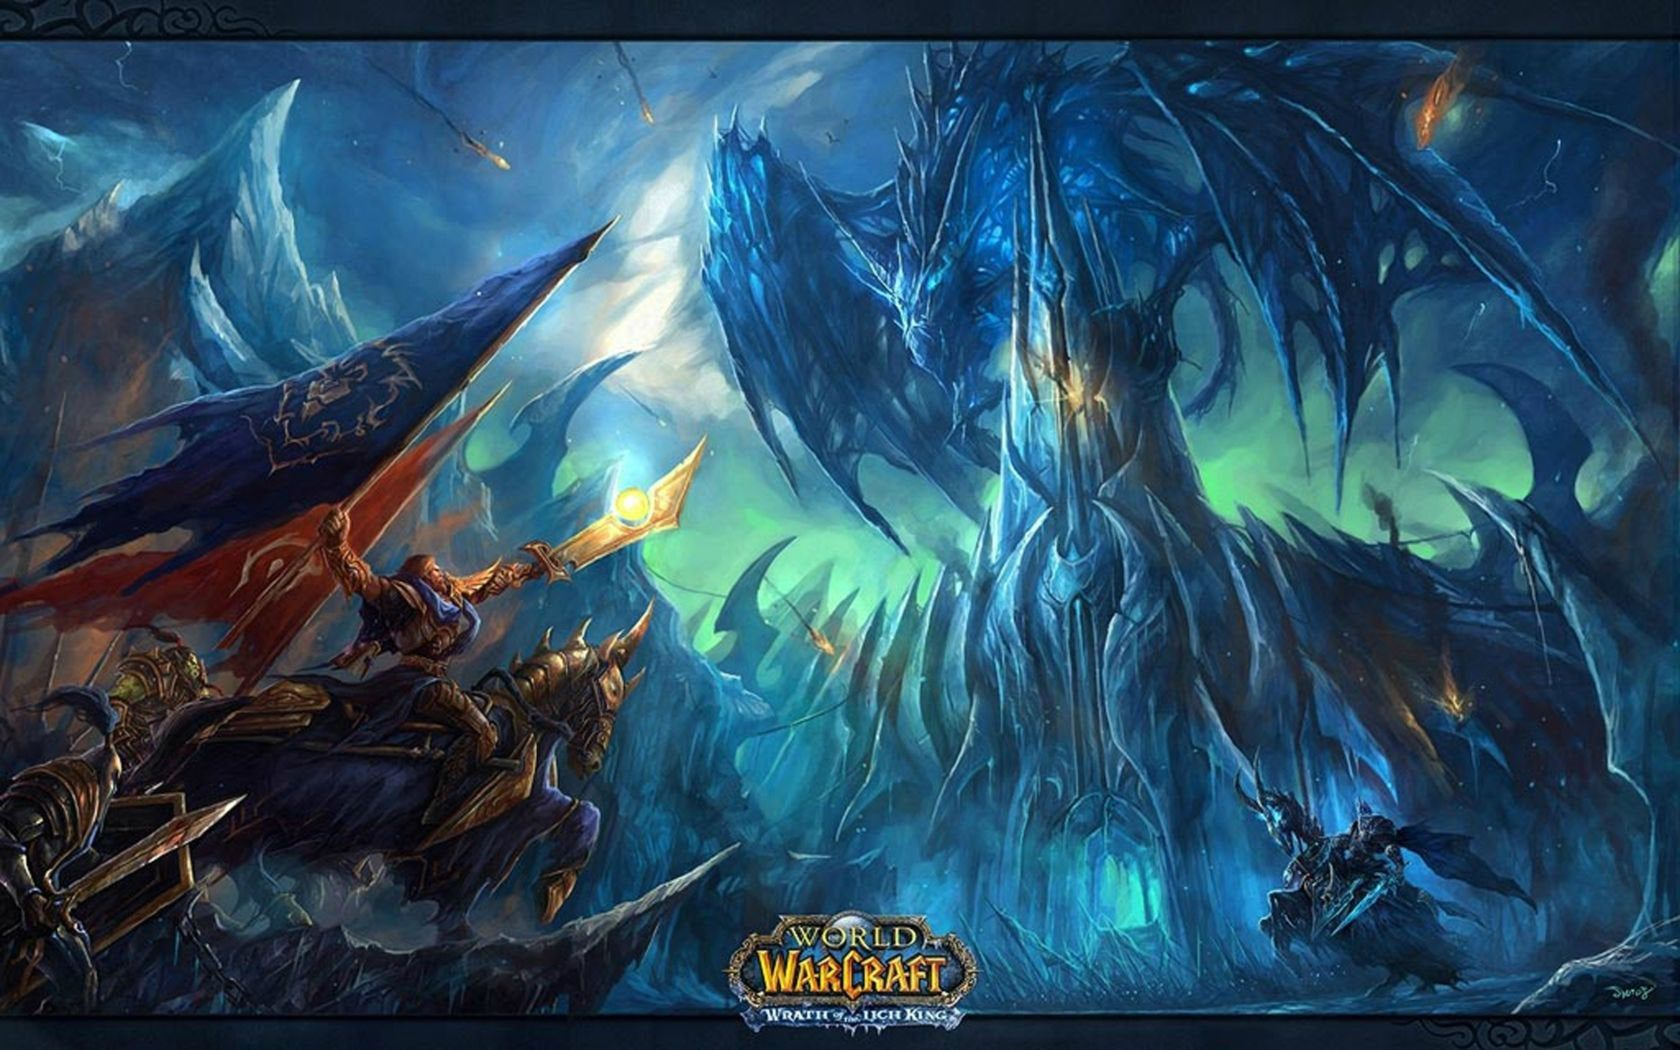 The Best World of Warcraft private servers